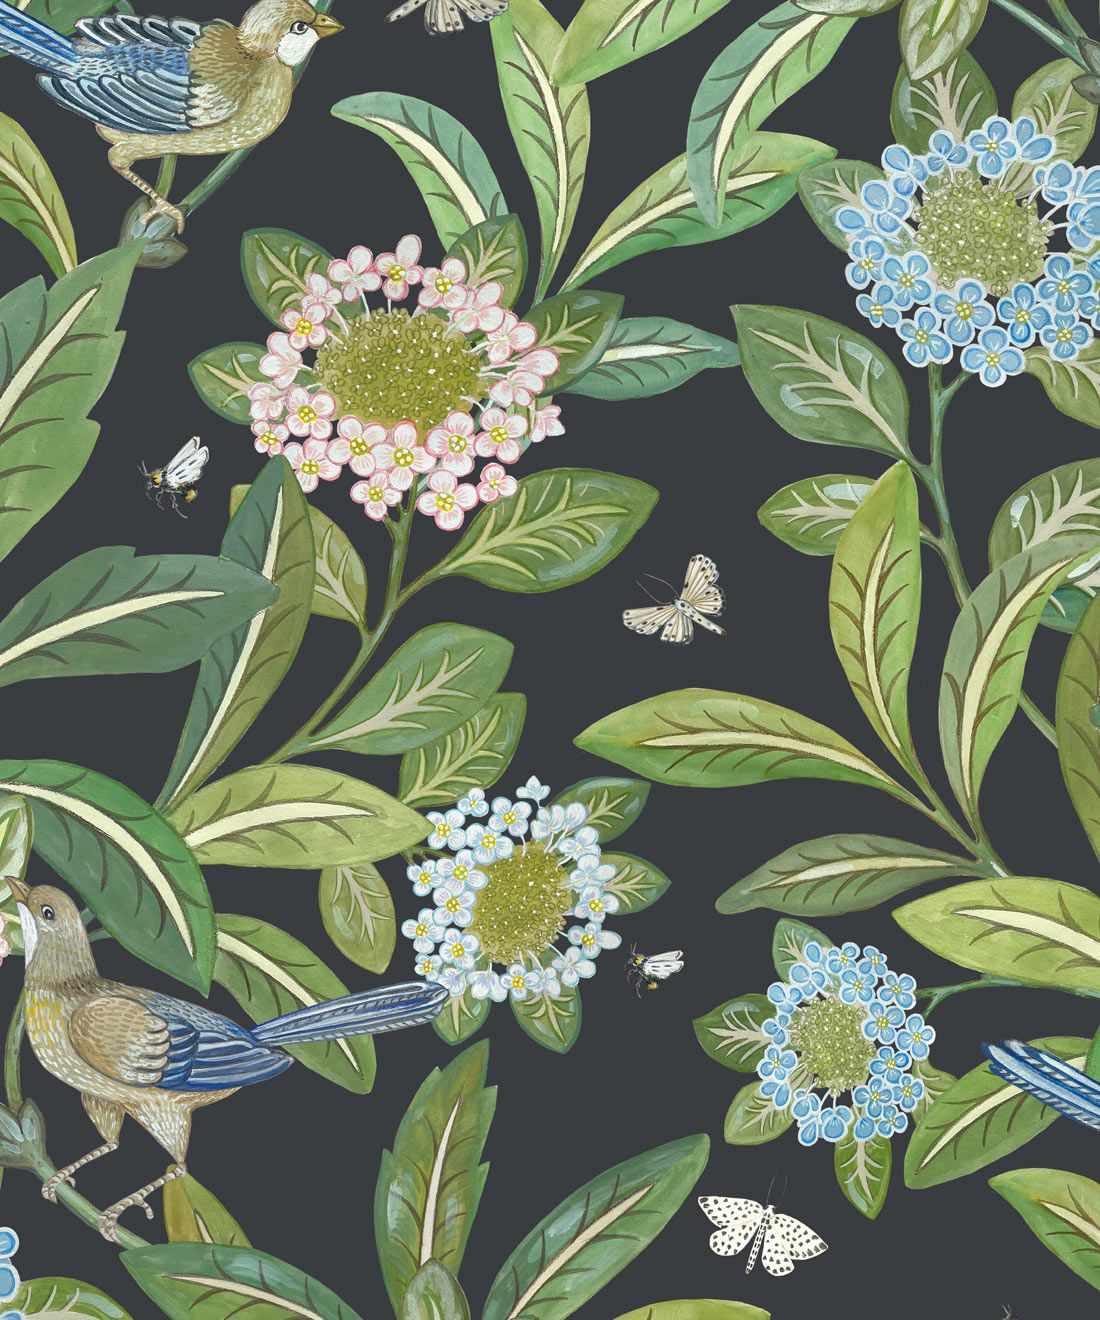 Summer Garden Wallpaper • Charcoal Wallpaper • Floral Wallpaper Swatch